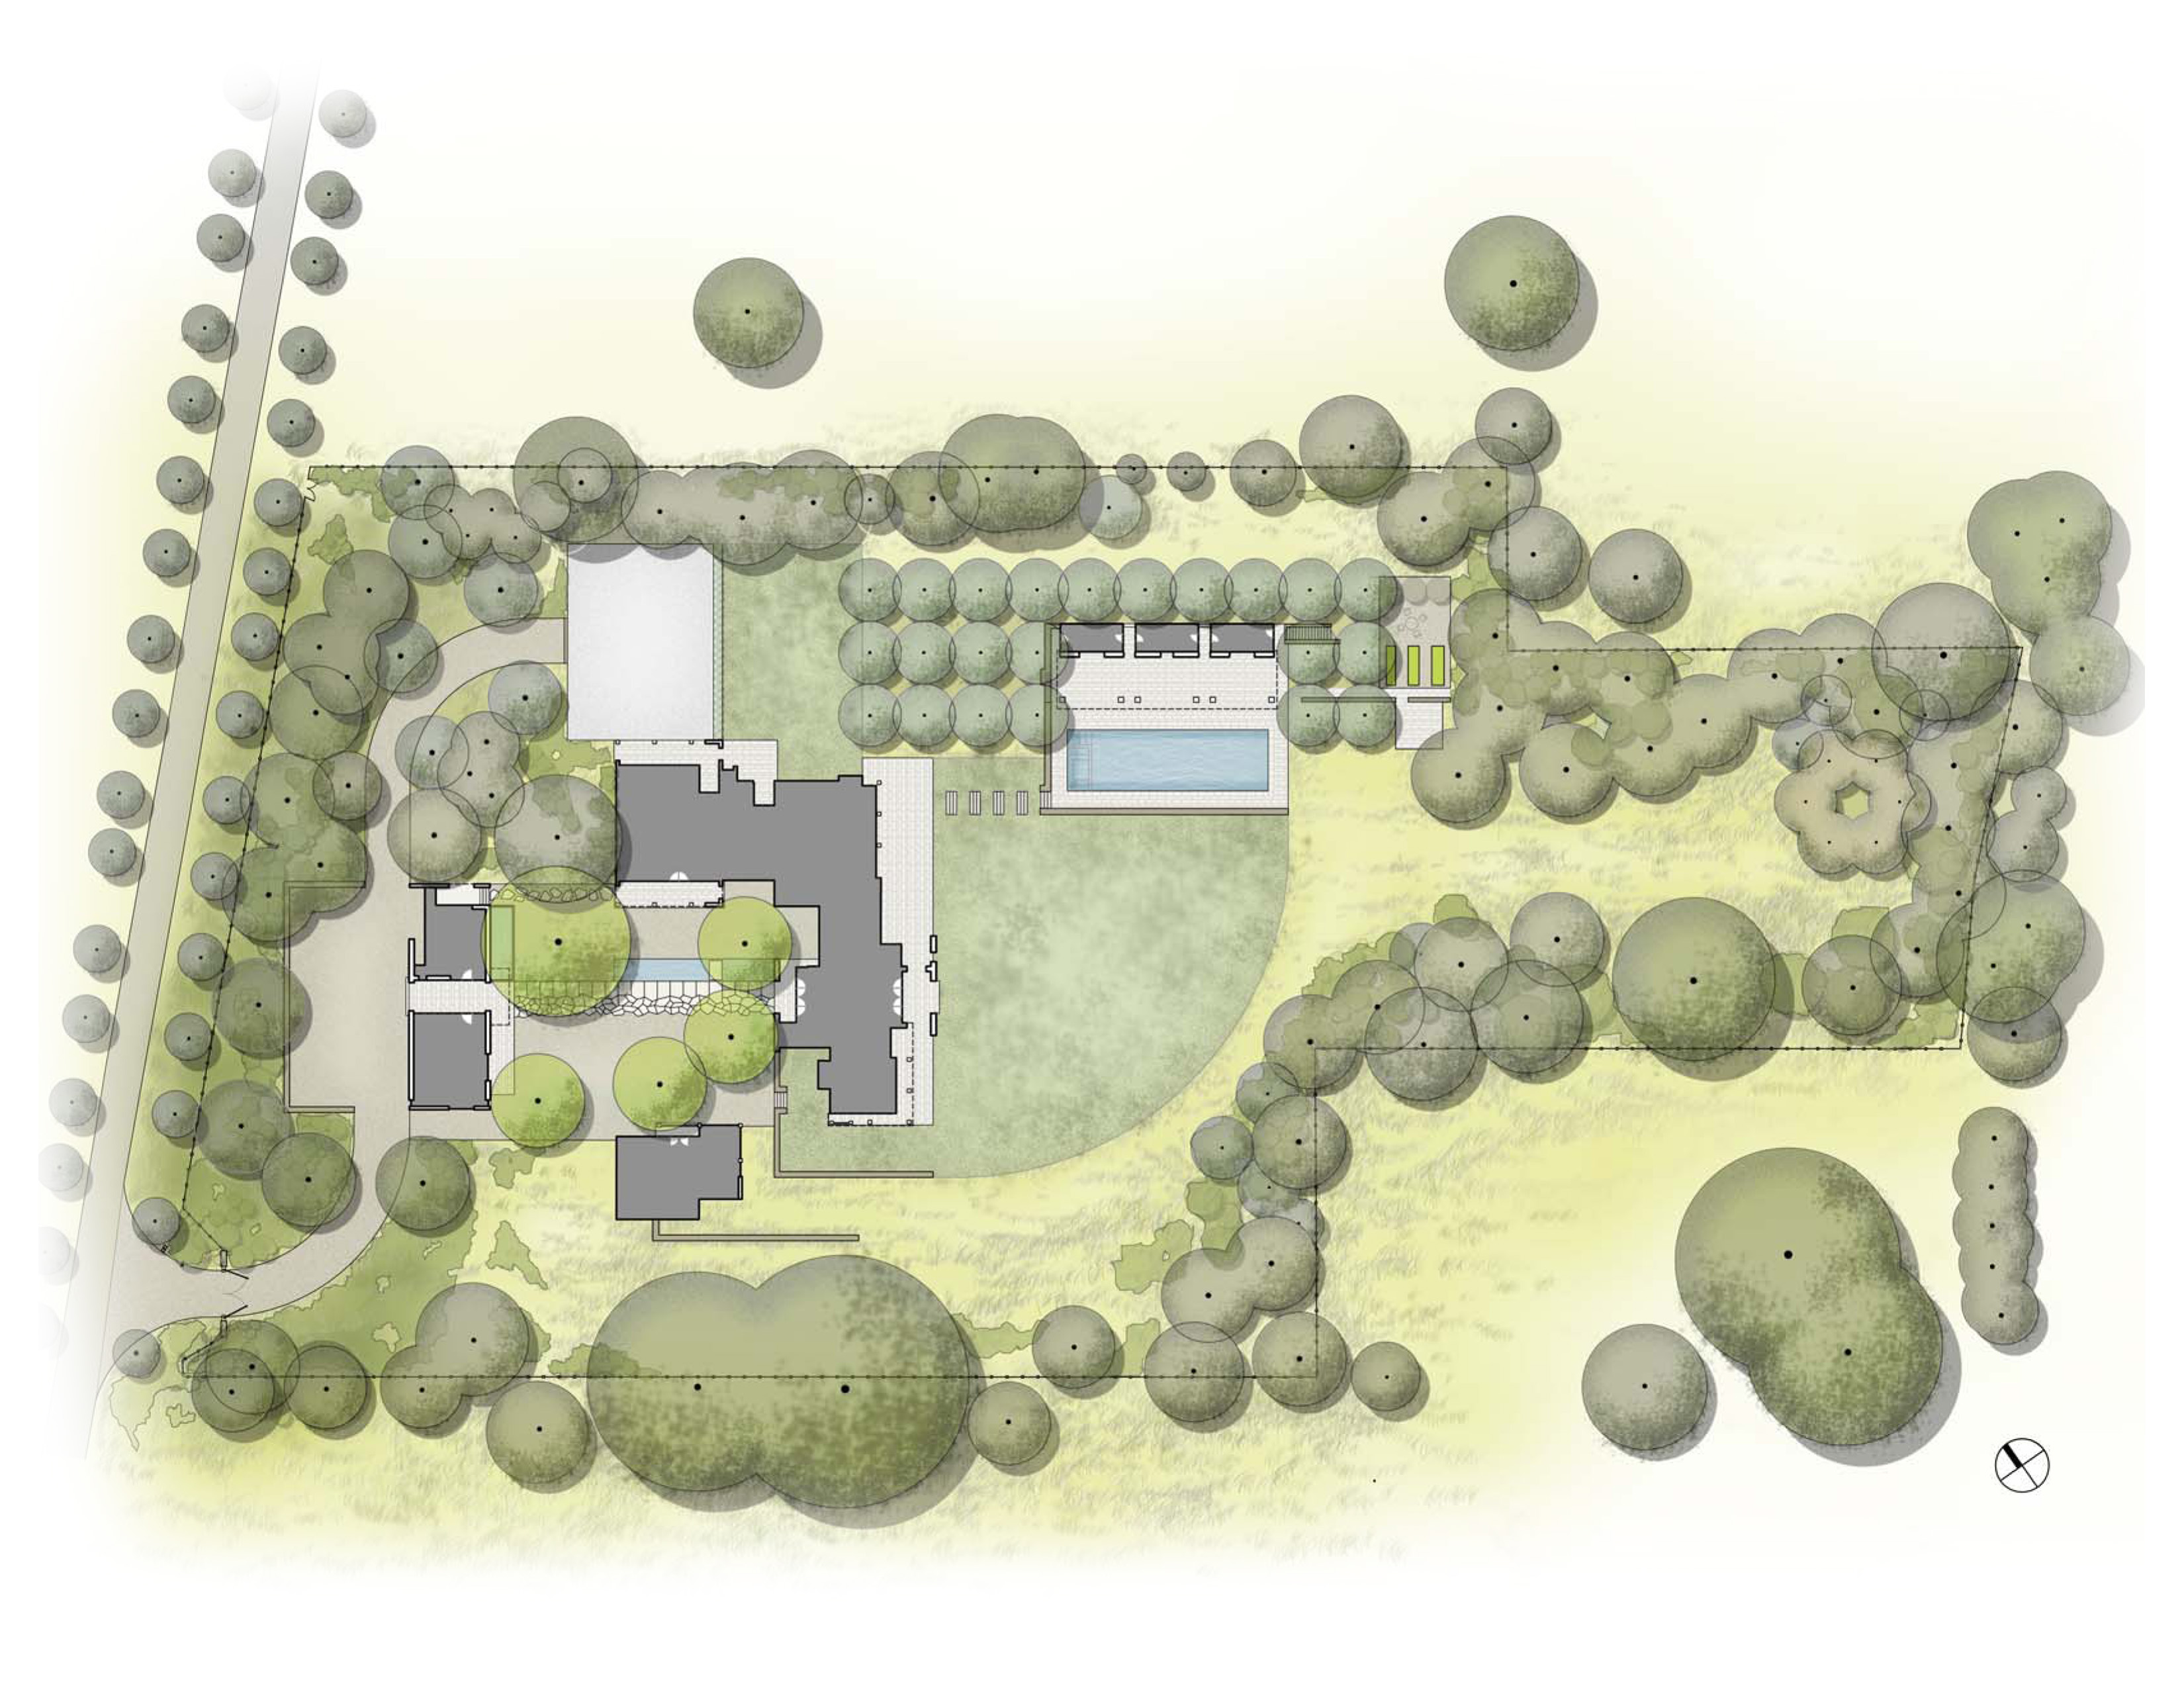 Asla 2013 professional awards woodside residence for Architectural site plan drawing